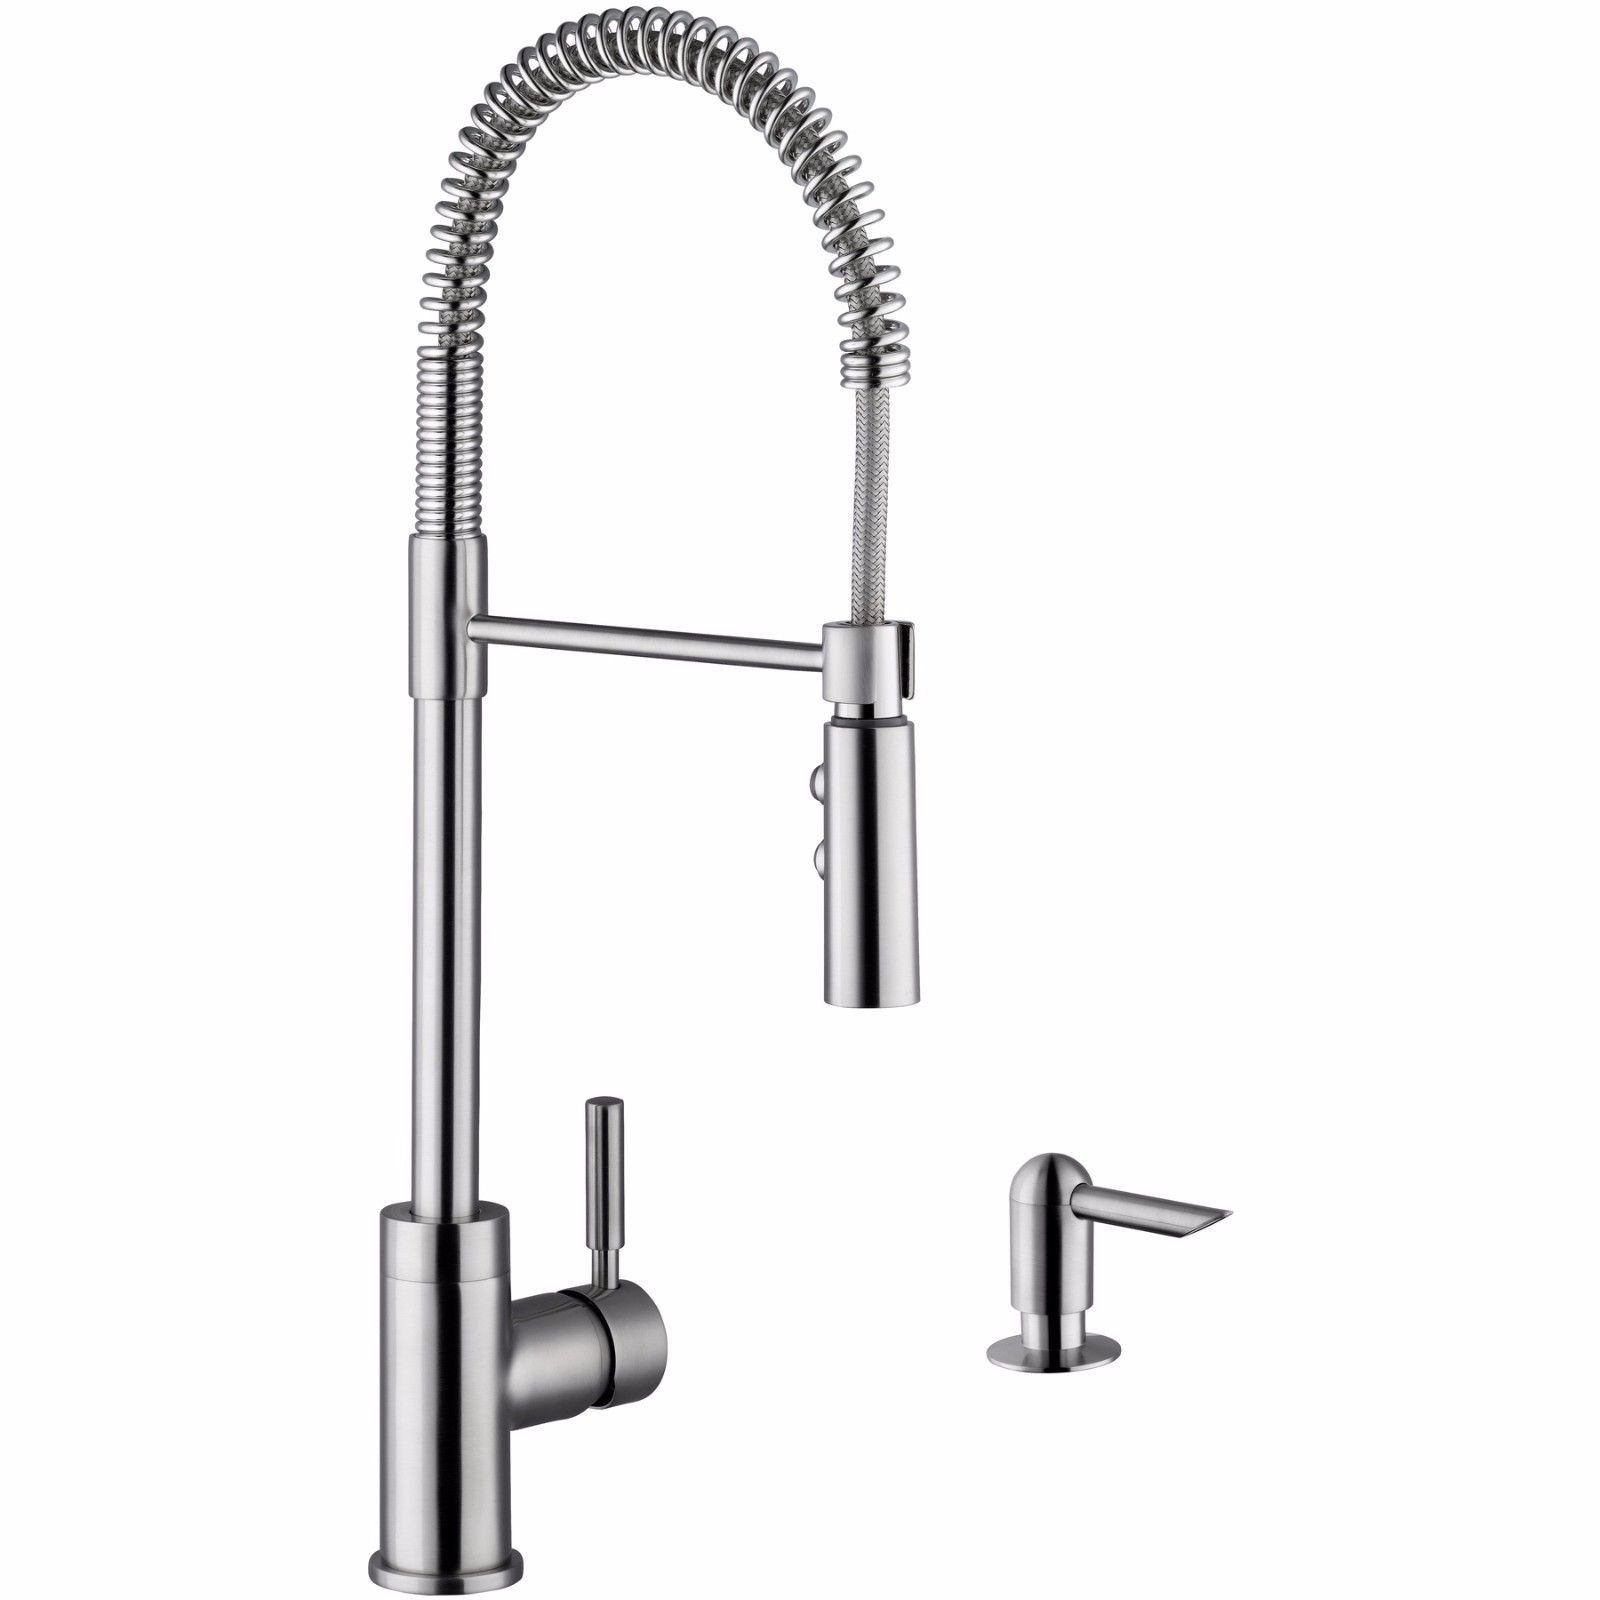 Cahaba Ca6113ss Single Handle Pull Down Industrial Style Faucet With